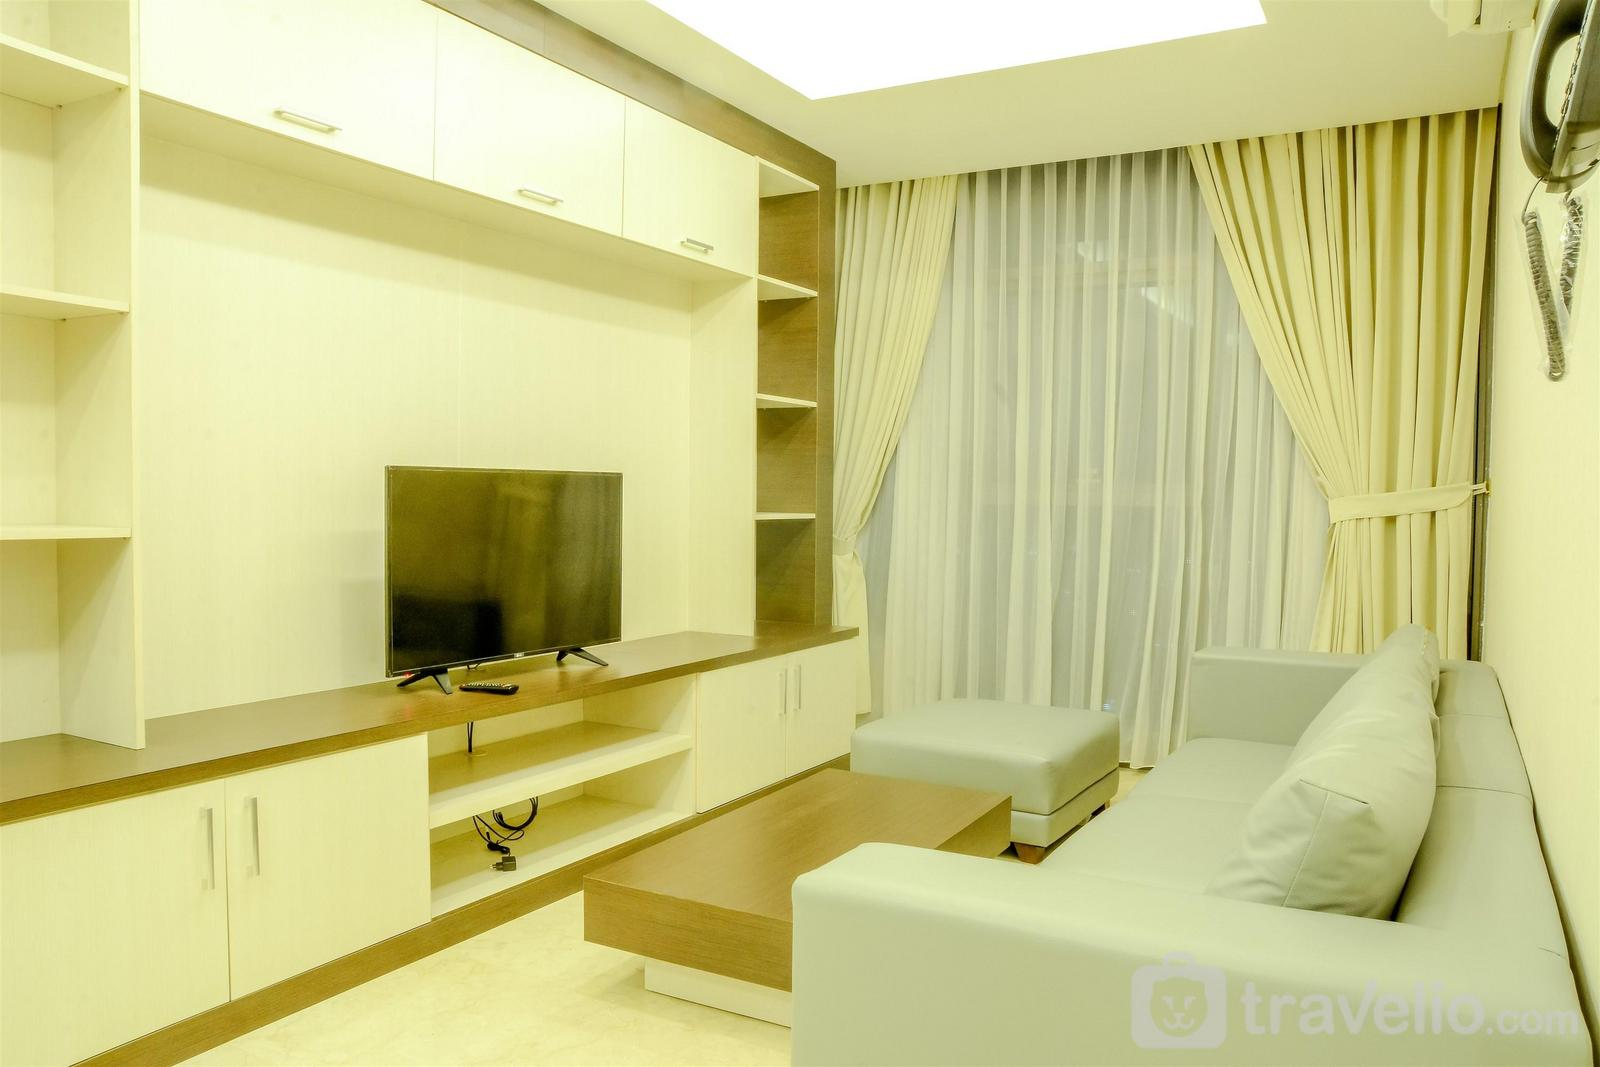 Lavenue Apartemen Pancoran - Spacious and Modern 2BR L'Avenue Apartment By Travelio